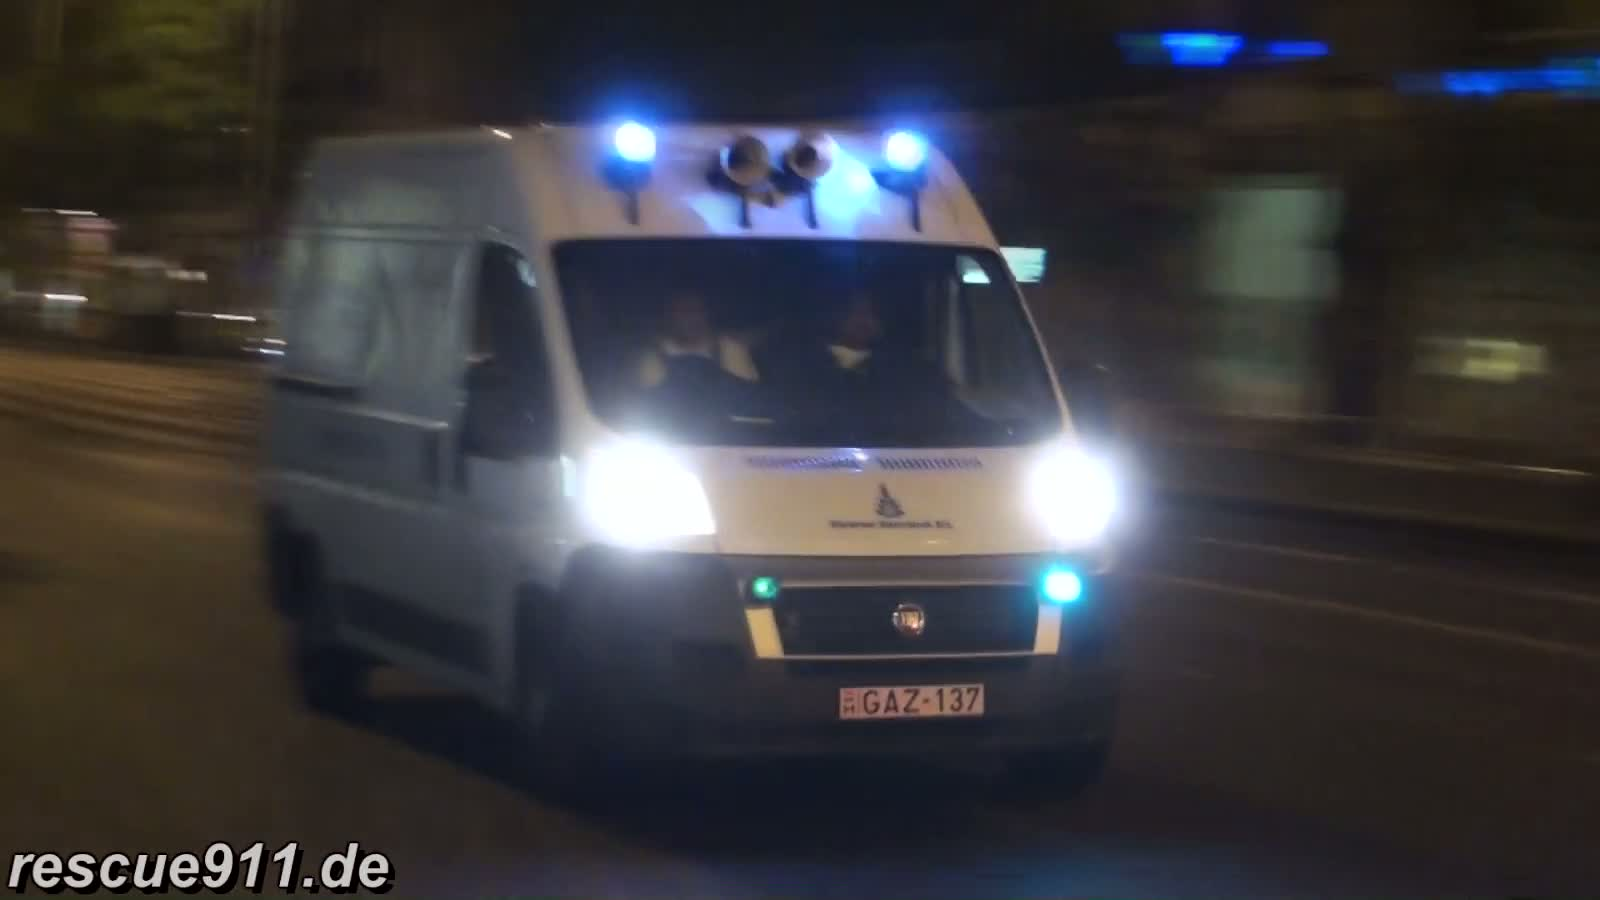 Emergency vehicle gas services Budapest (stream)